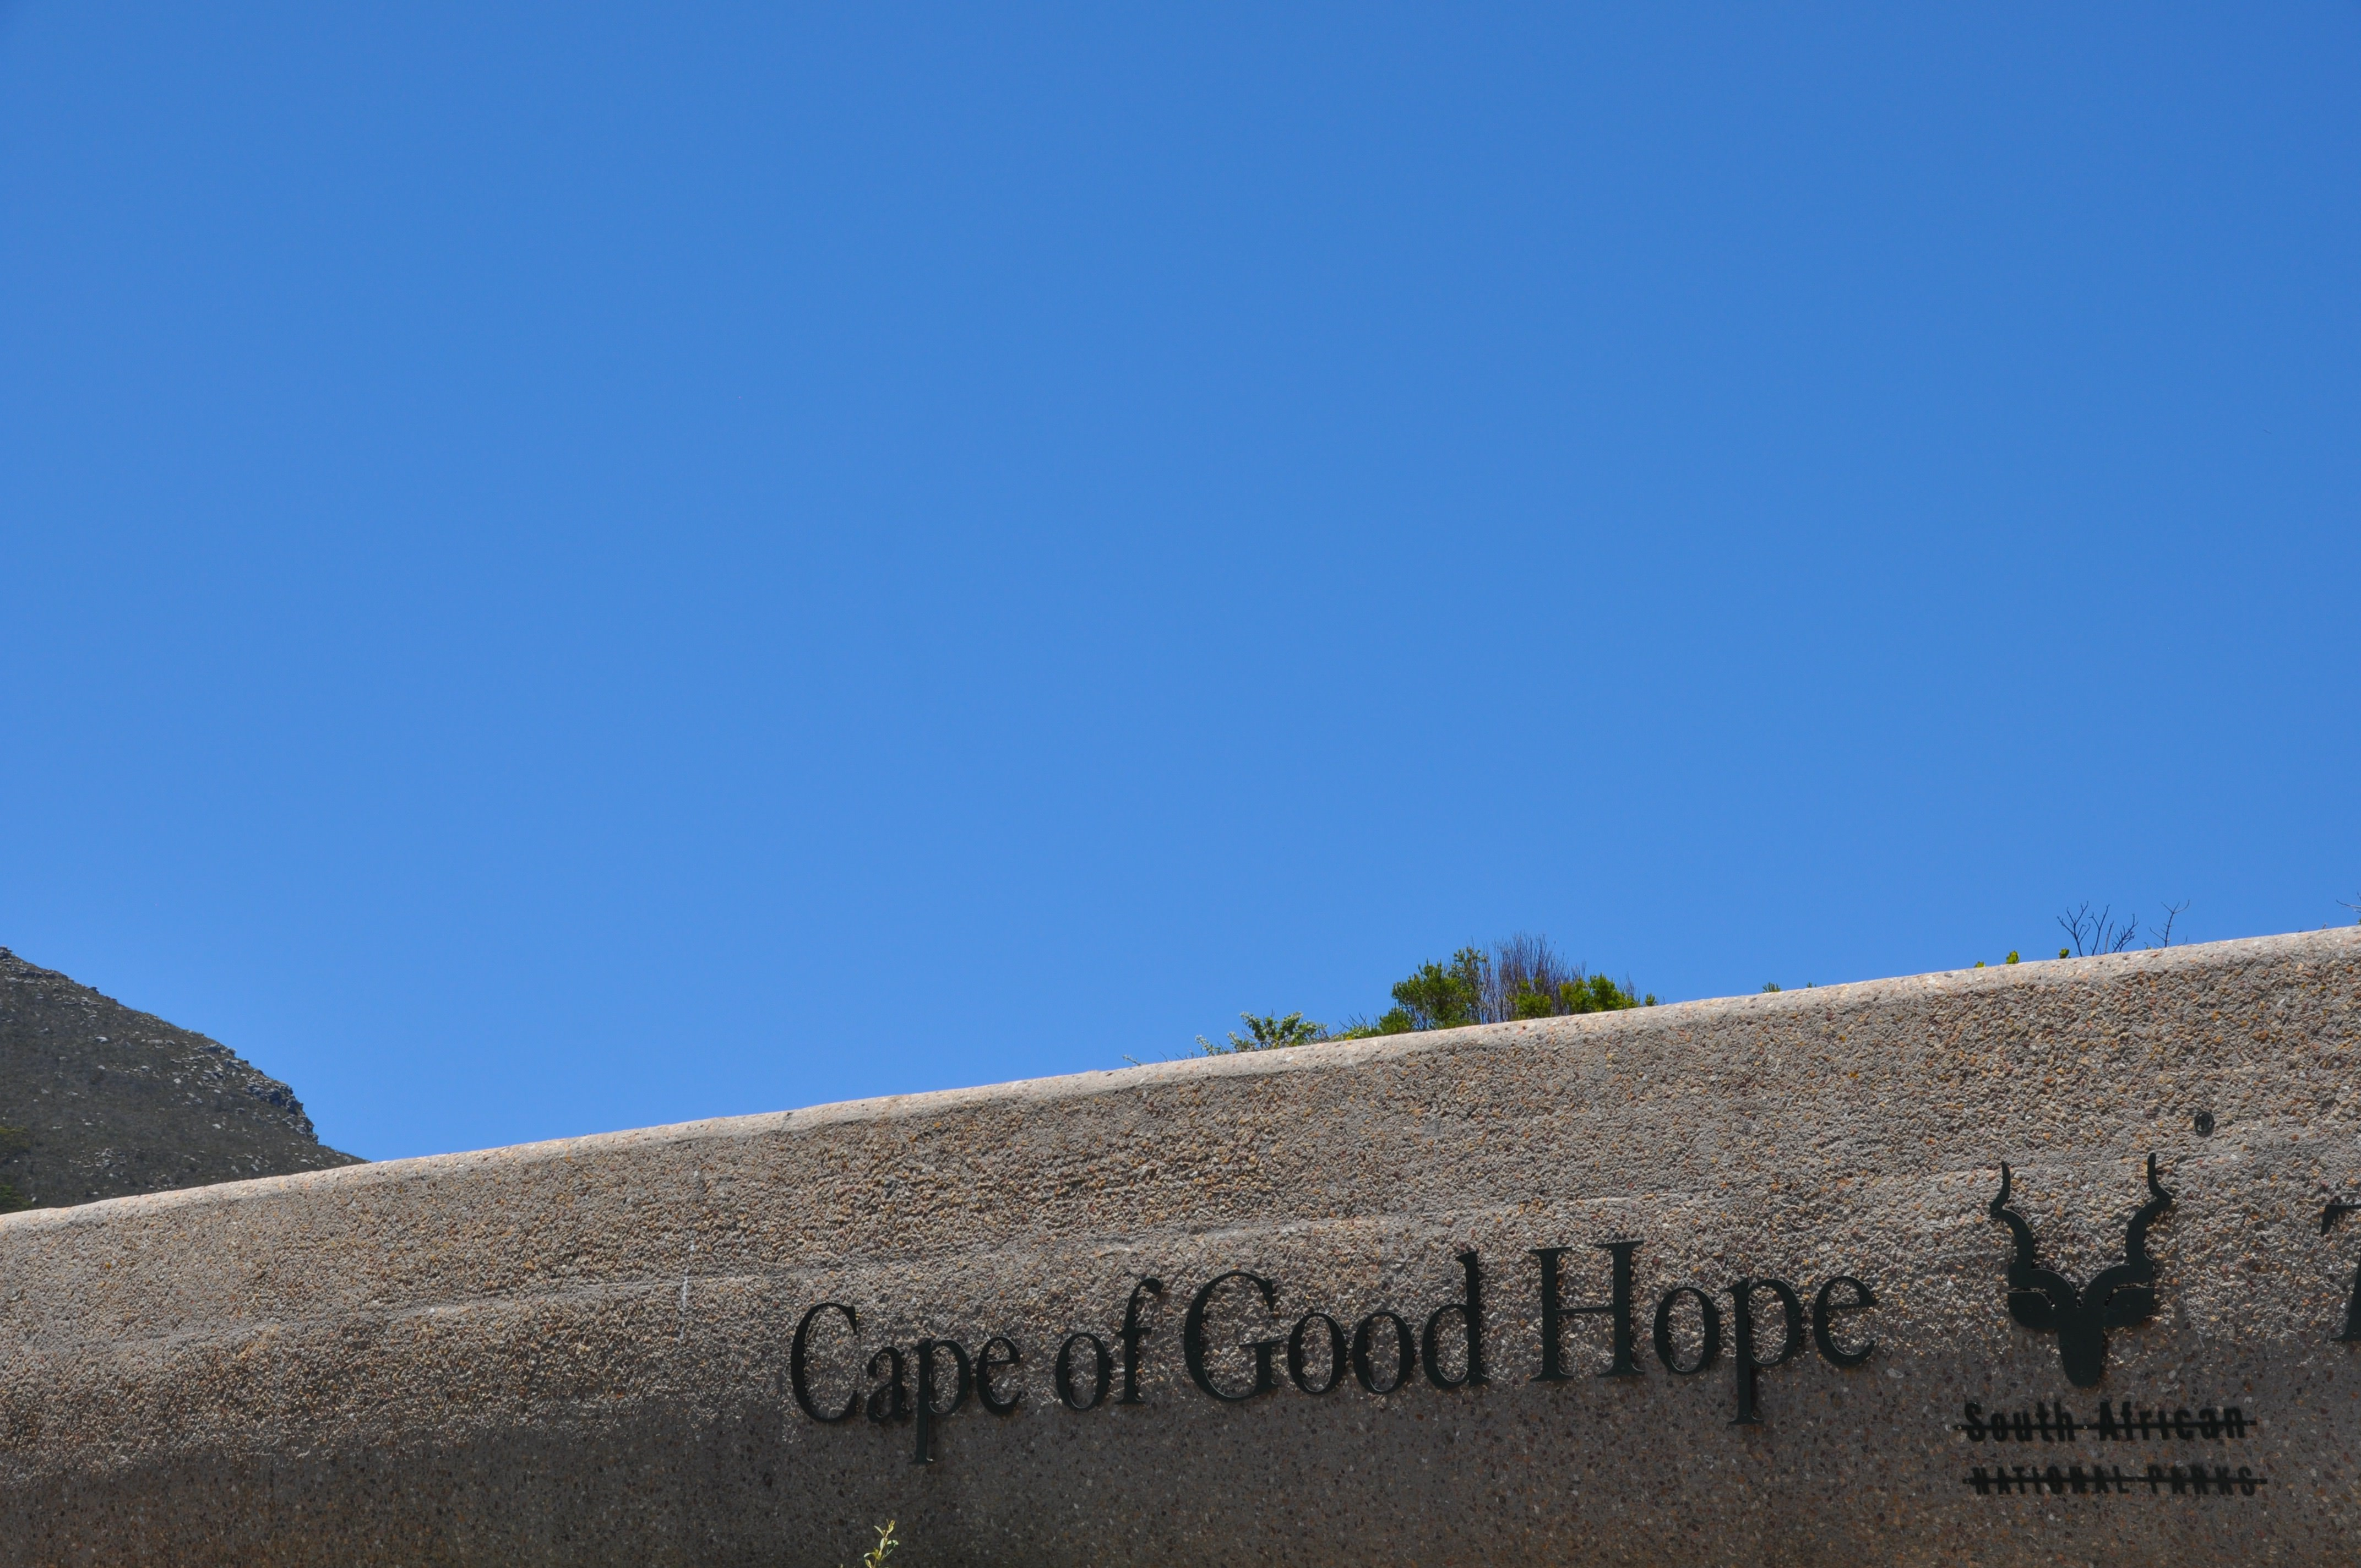 Entering the Cape of Good Hope